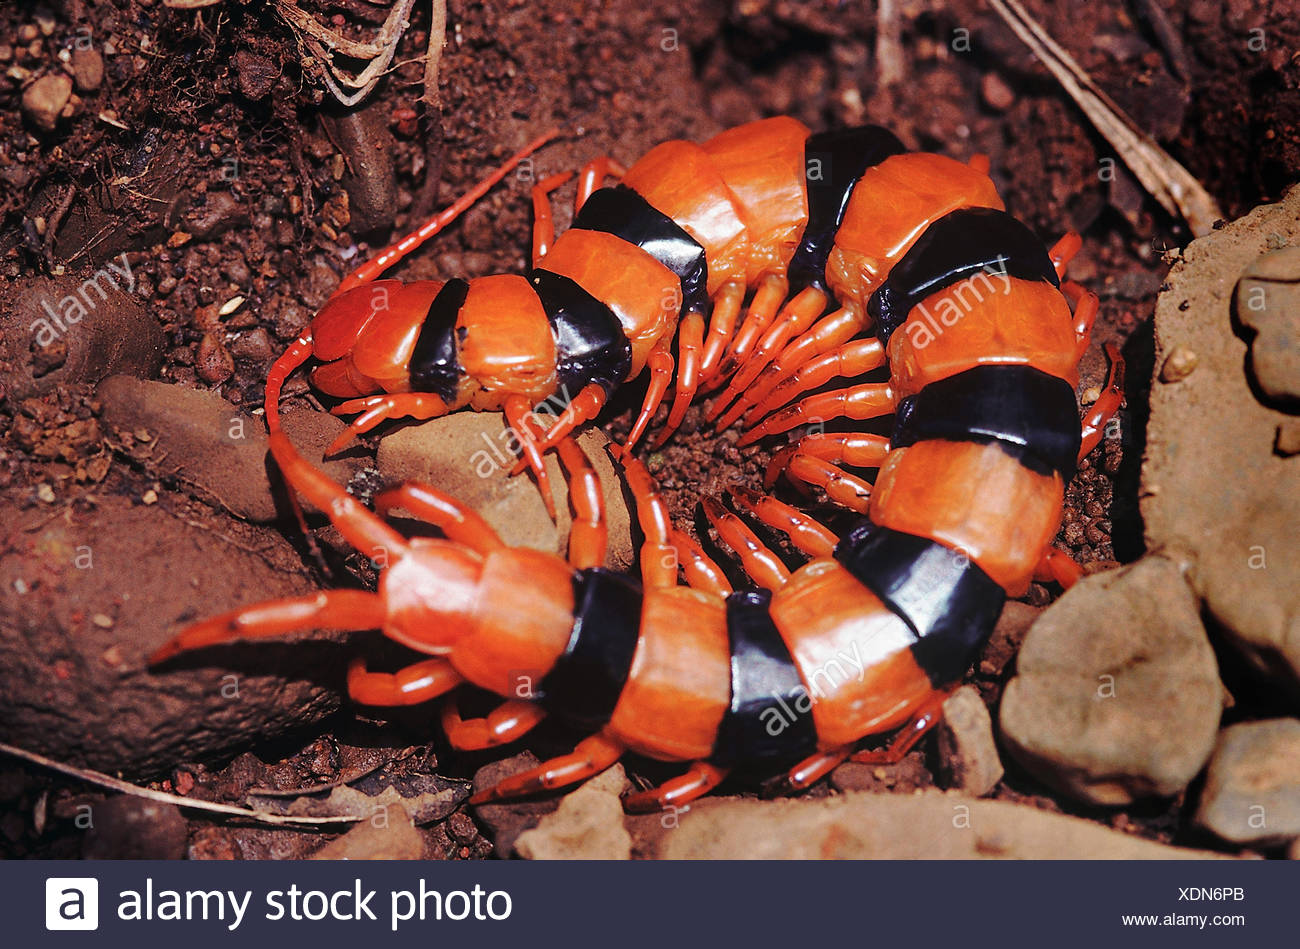 Centipede Stock Photos & Centipede Stock Images - Alamy